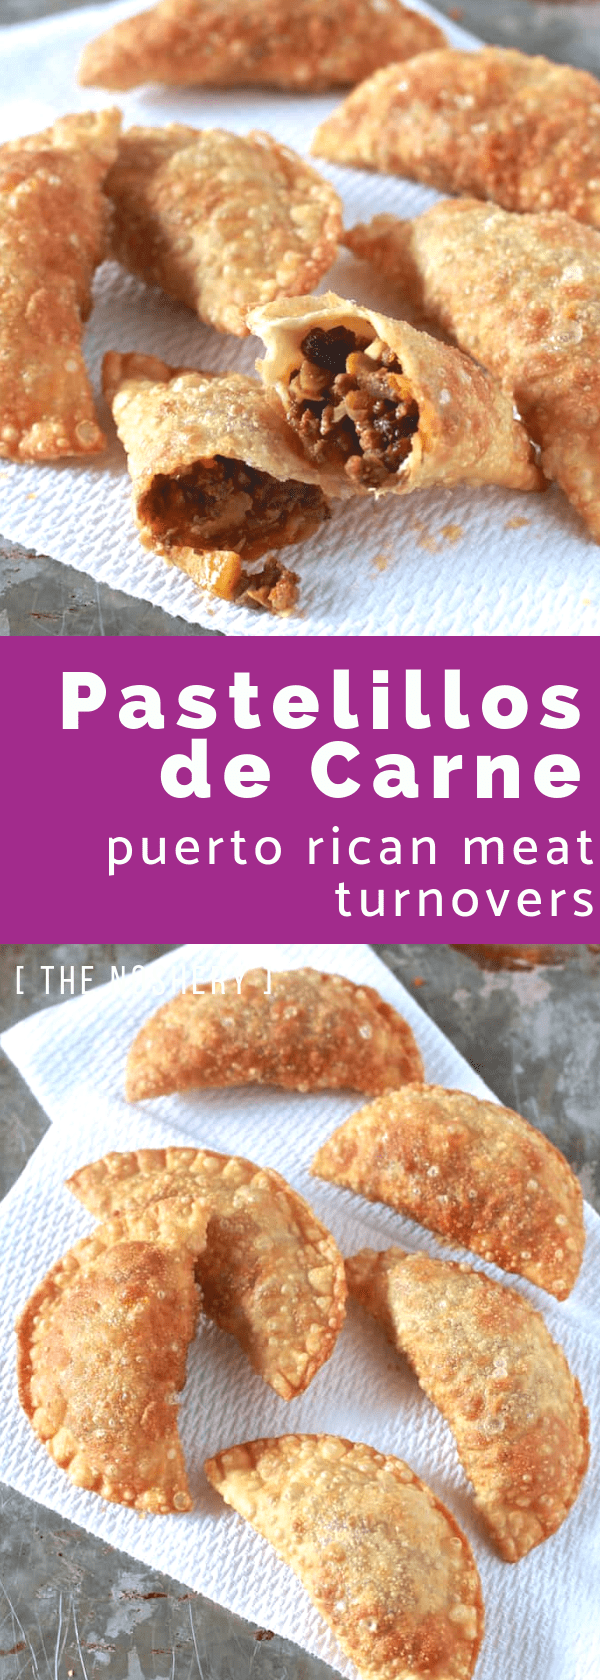 Pastelillos de Carne (Puerto Rican Meat Turnovers) with Homemade Pastelillo Dough Recipe | Pastelillos de carne are a Puerto Rican street food staple. This recipe is made with a homemade dough and flavor-packed beef filling. | The Noshery